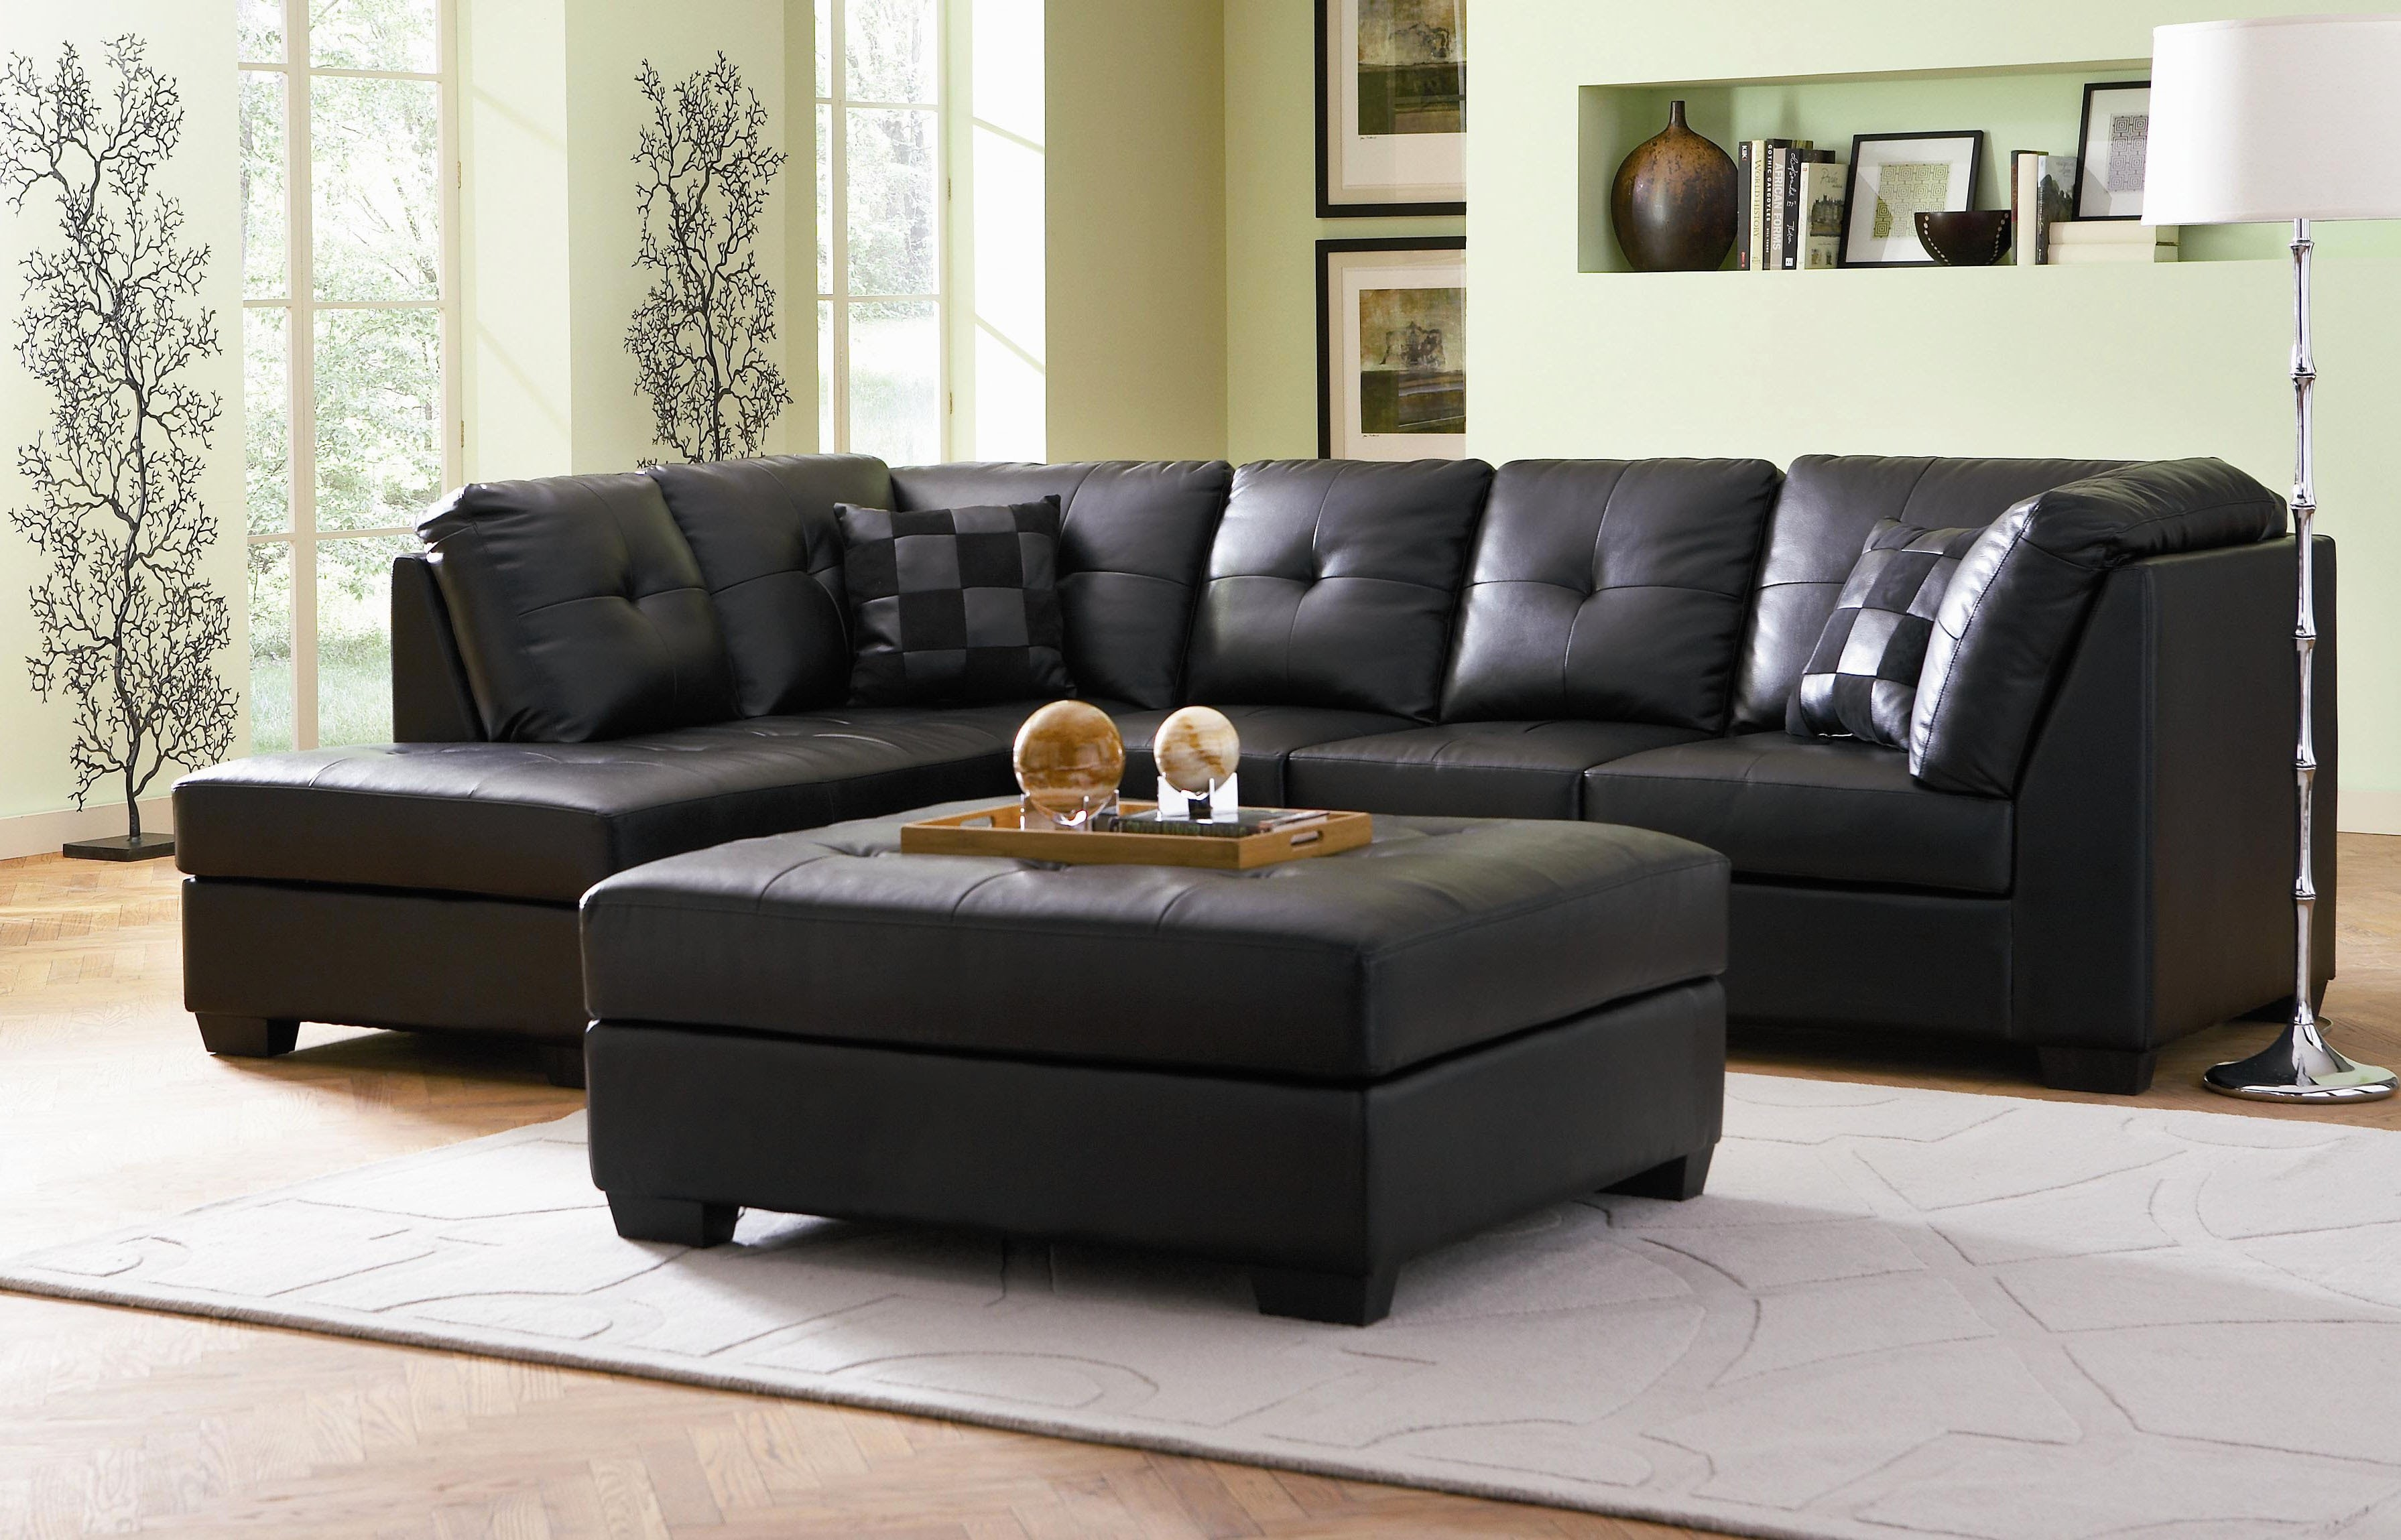 Sofas Center Sofa On Sale Second Hand Classic Sofas Or Clearance Regarding Classic Sofas For Sale (Image 12 of 15)